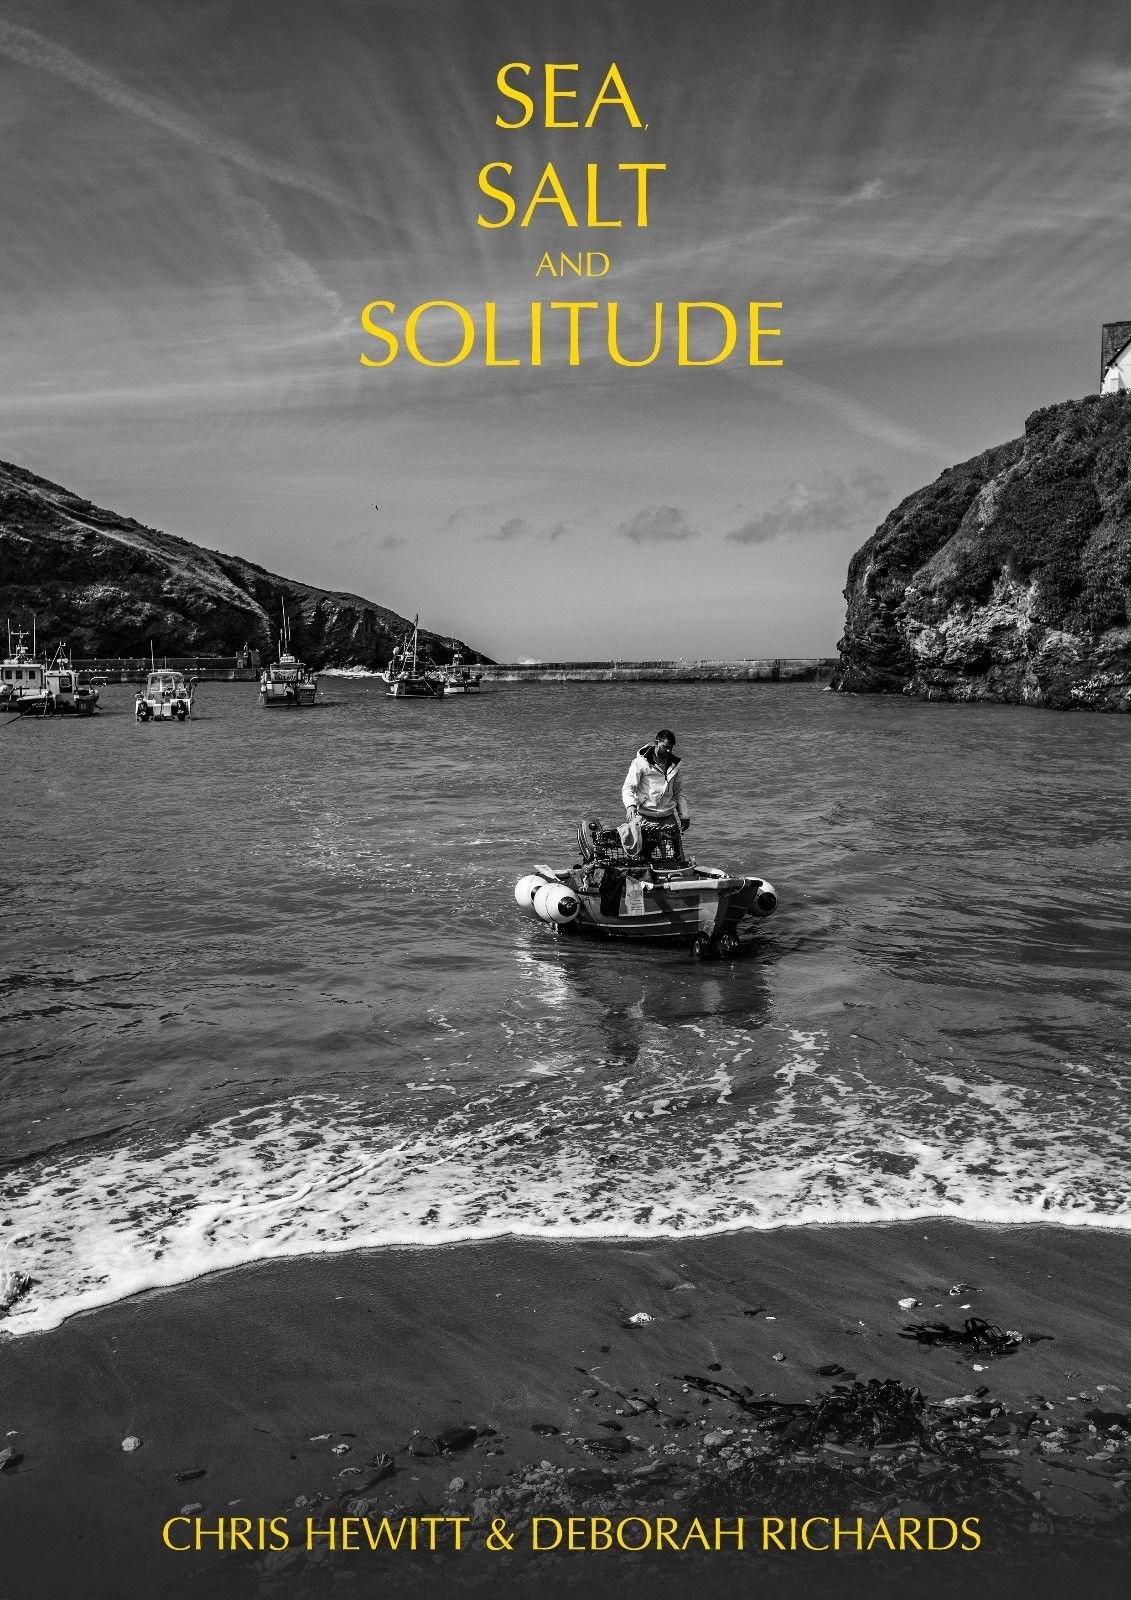 Sea, Salt and Solitude - By Chris Hewitt and Deborah Richards 00350